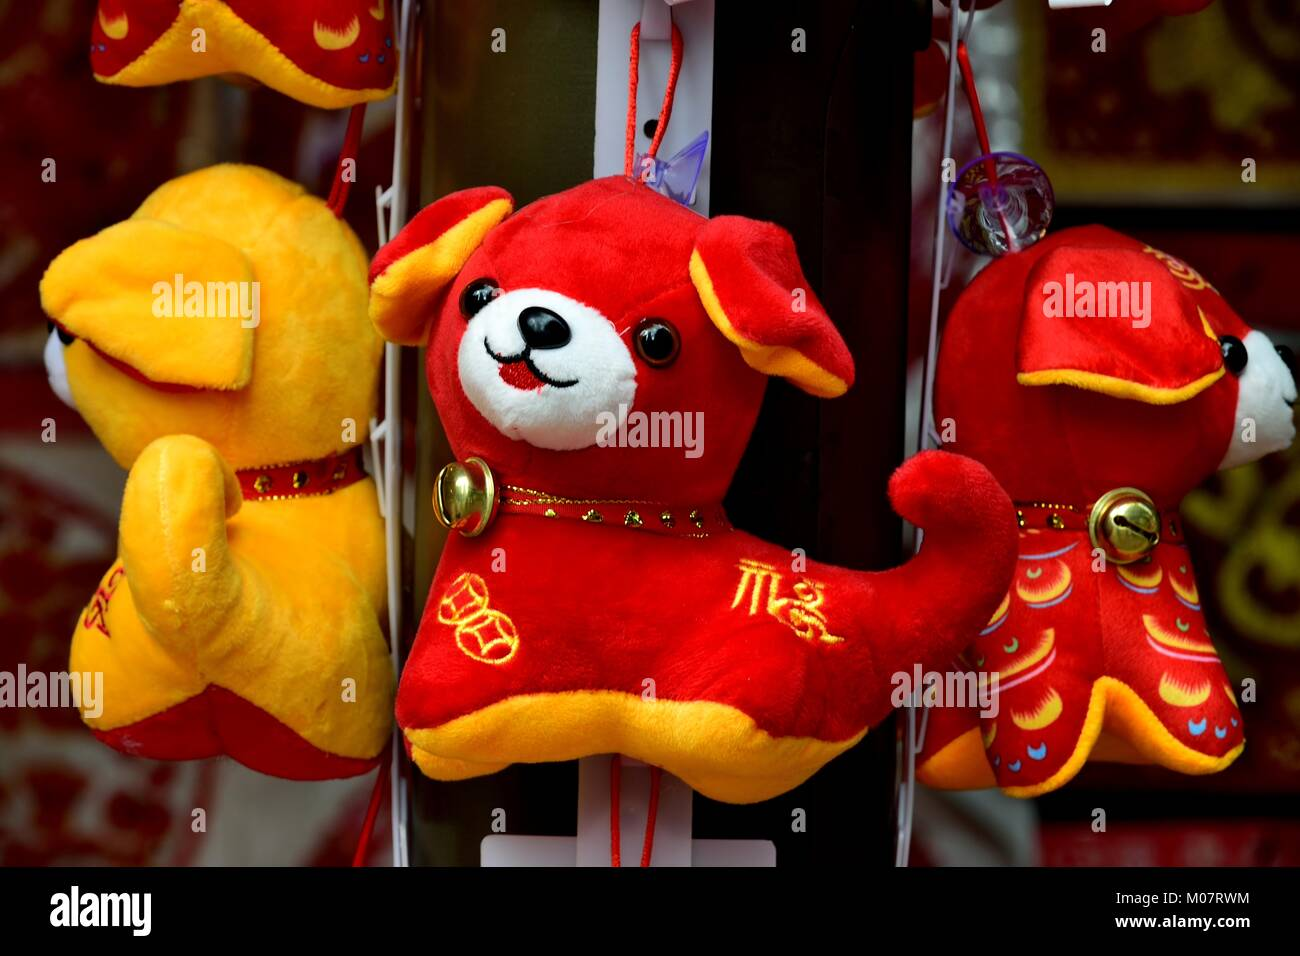 Toy dogs on sale in Chinatown during Lunar New Year in Singapore - Stock Image